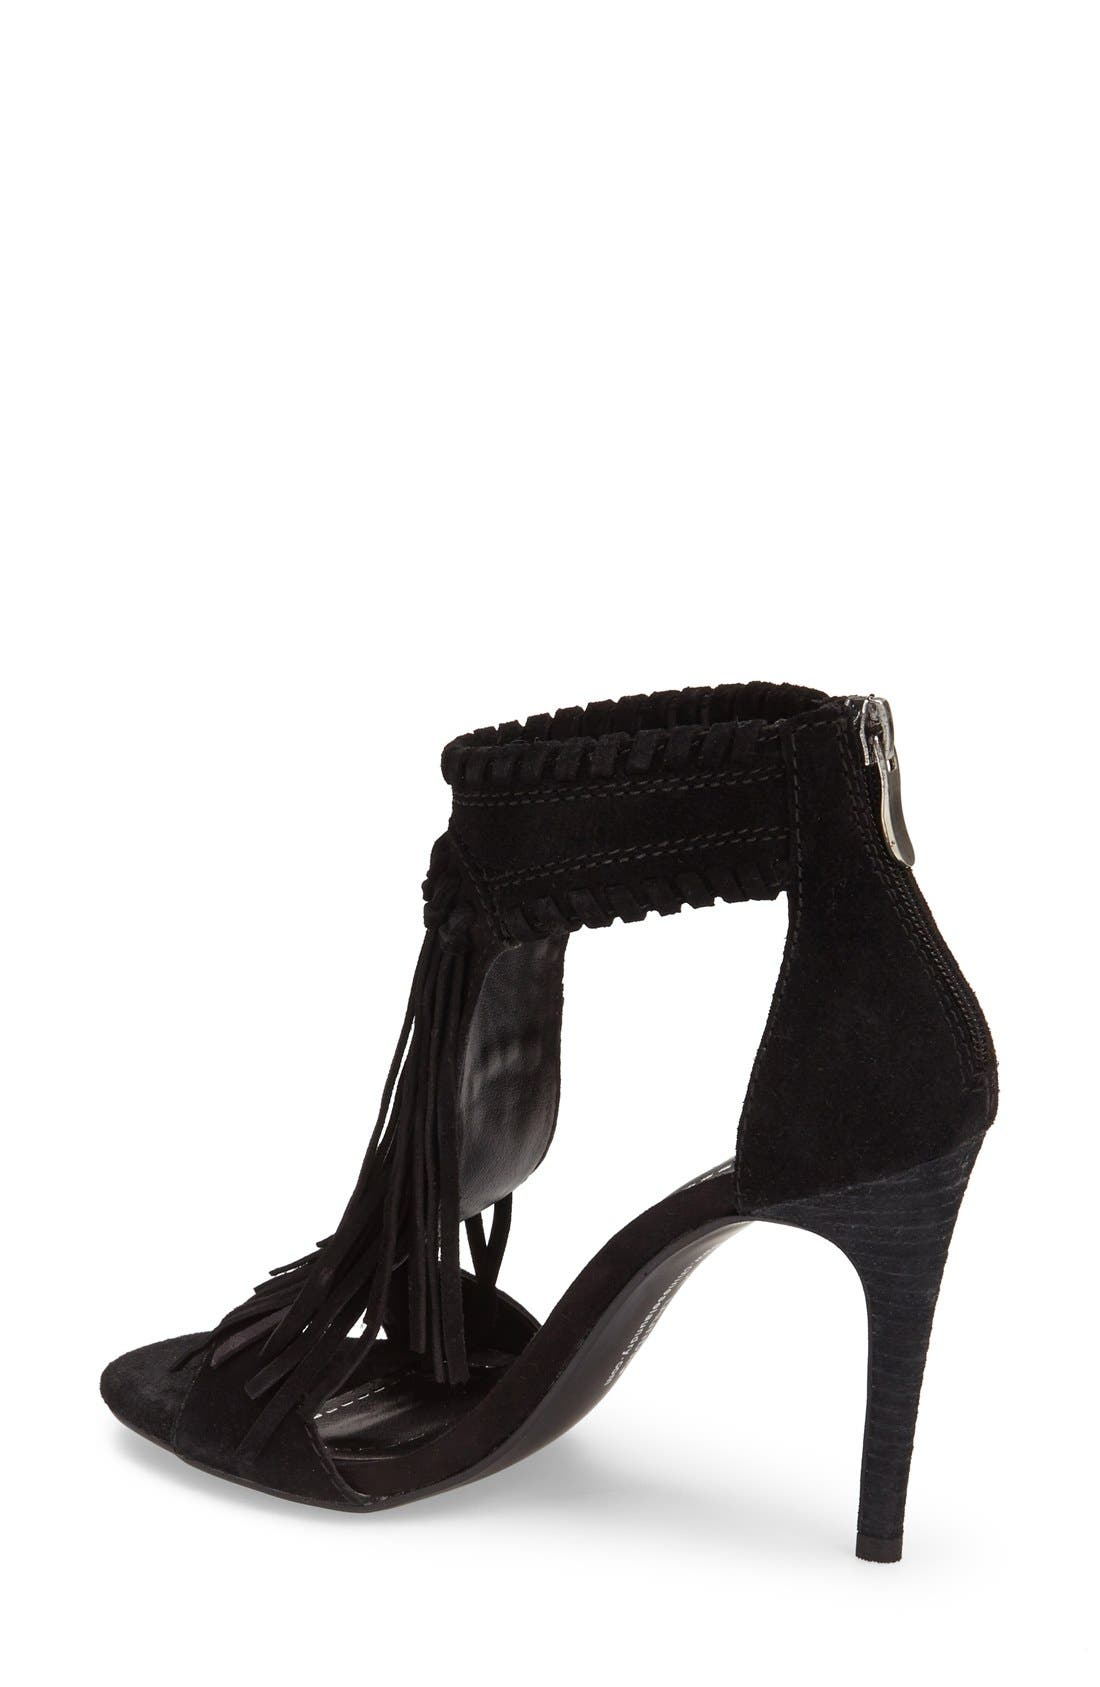 Alternate Image 2  - Chinese Laundry 'Santa Fe' Suede Fringe Sandal (Women)